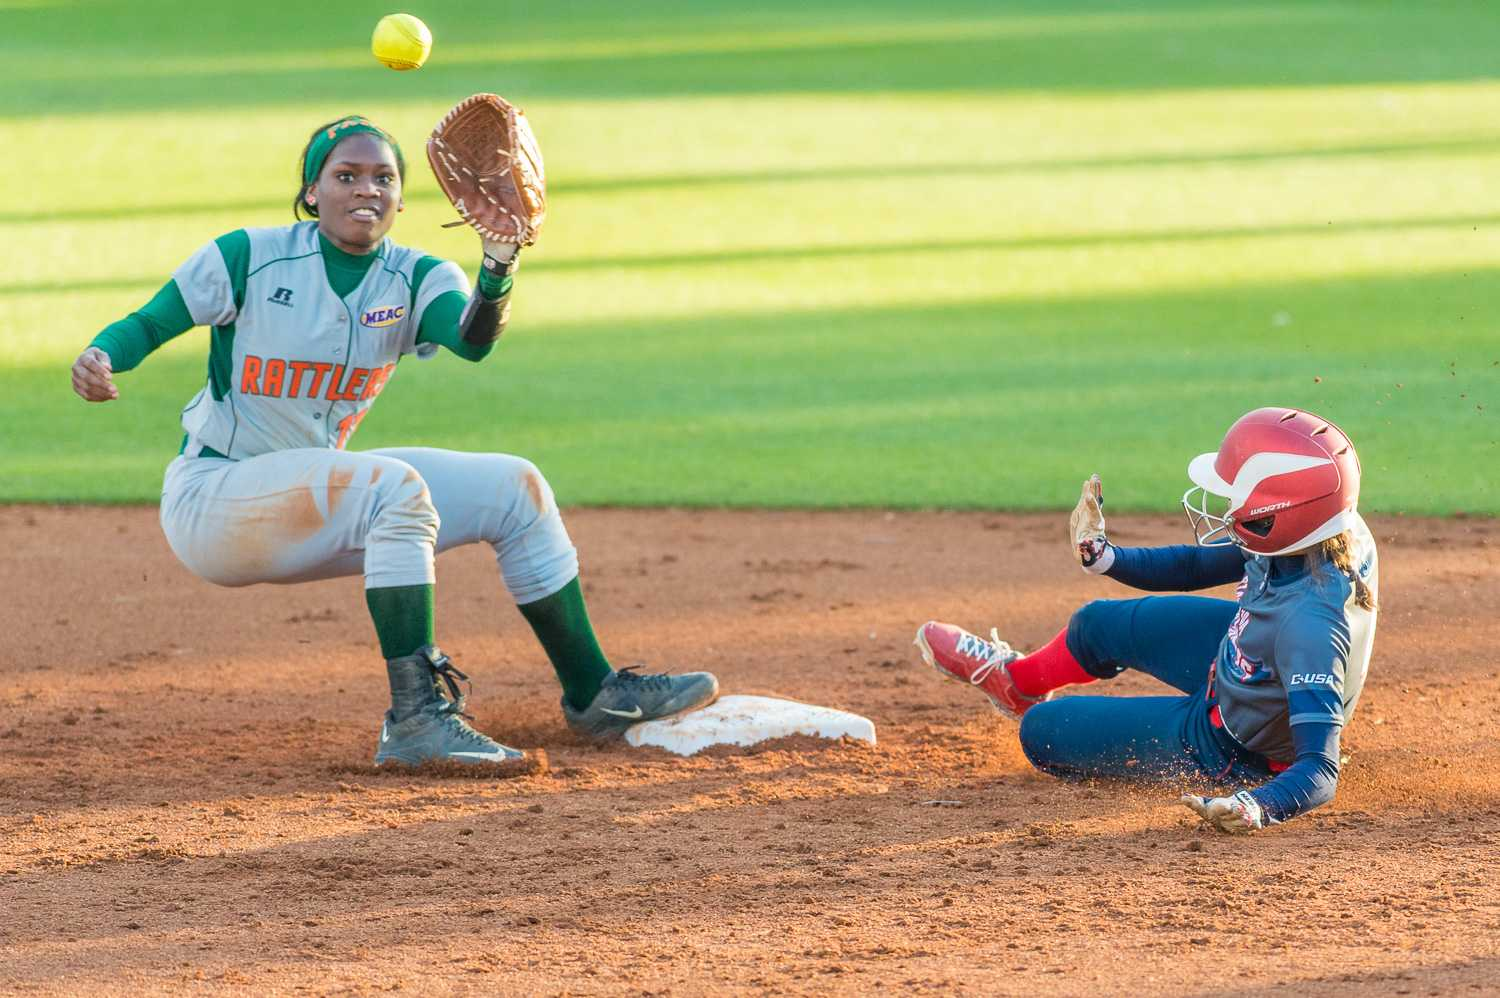 Christina Martinez (4) slides into second base for a steal.